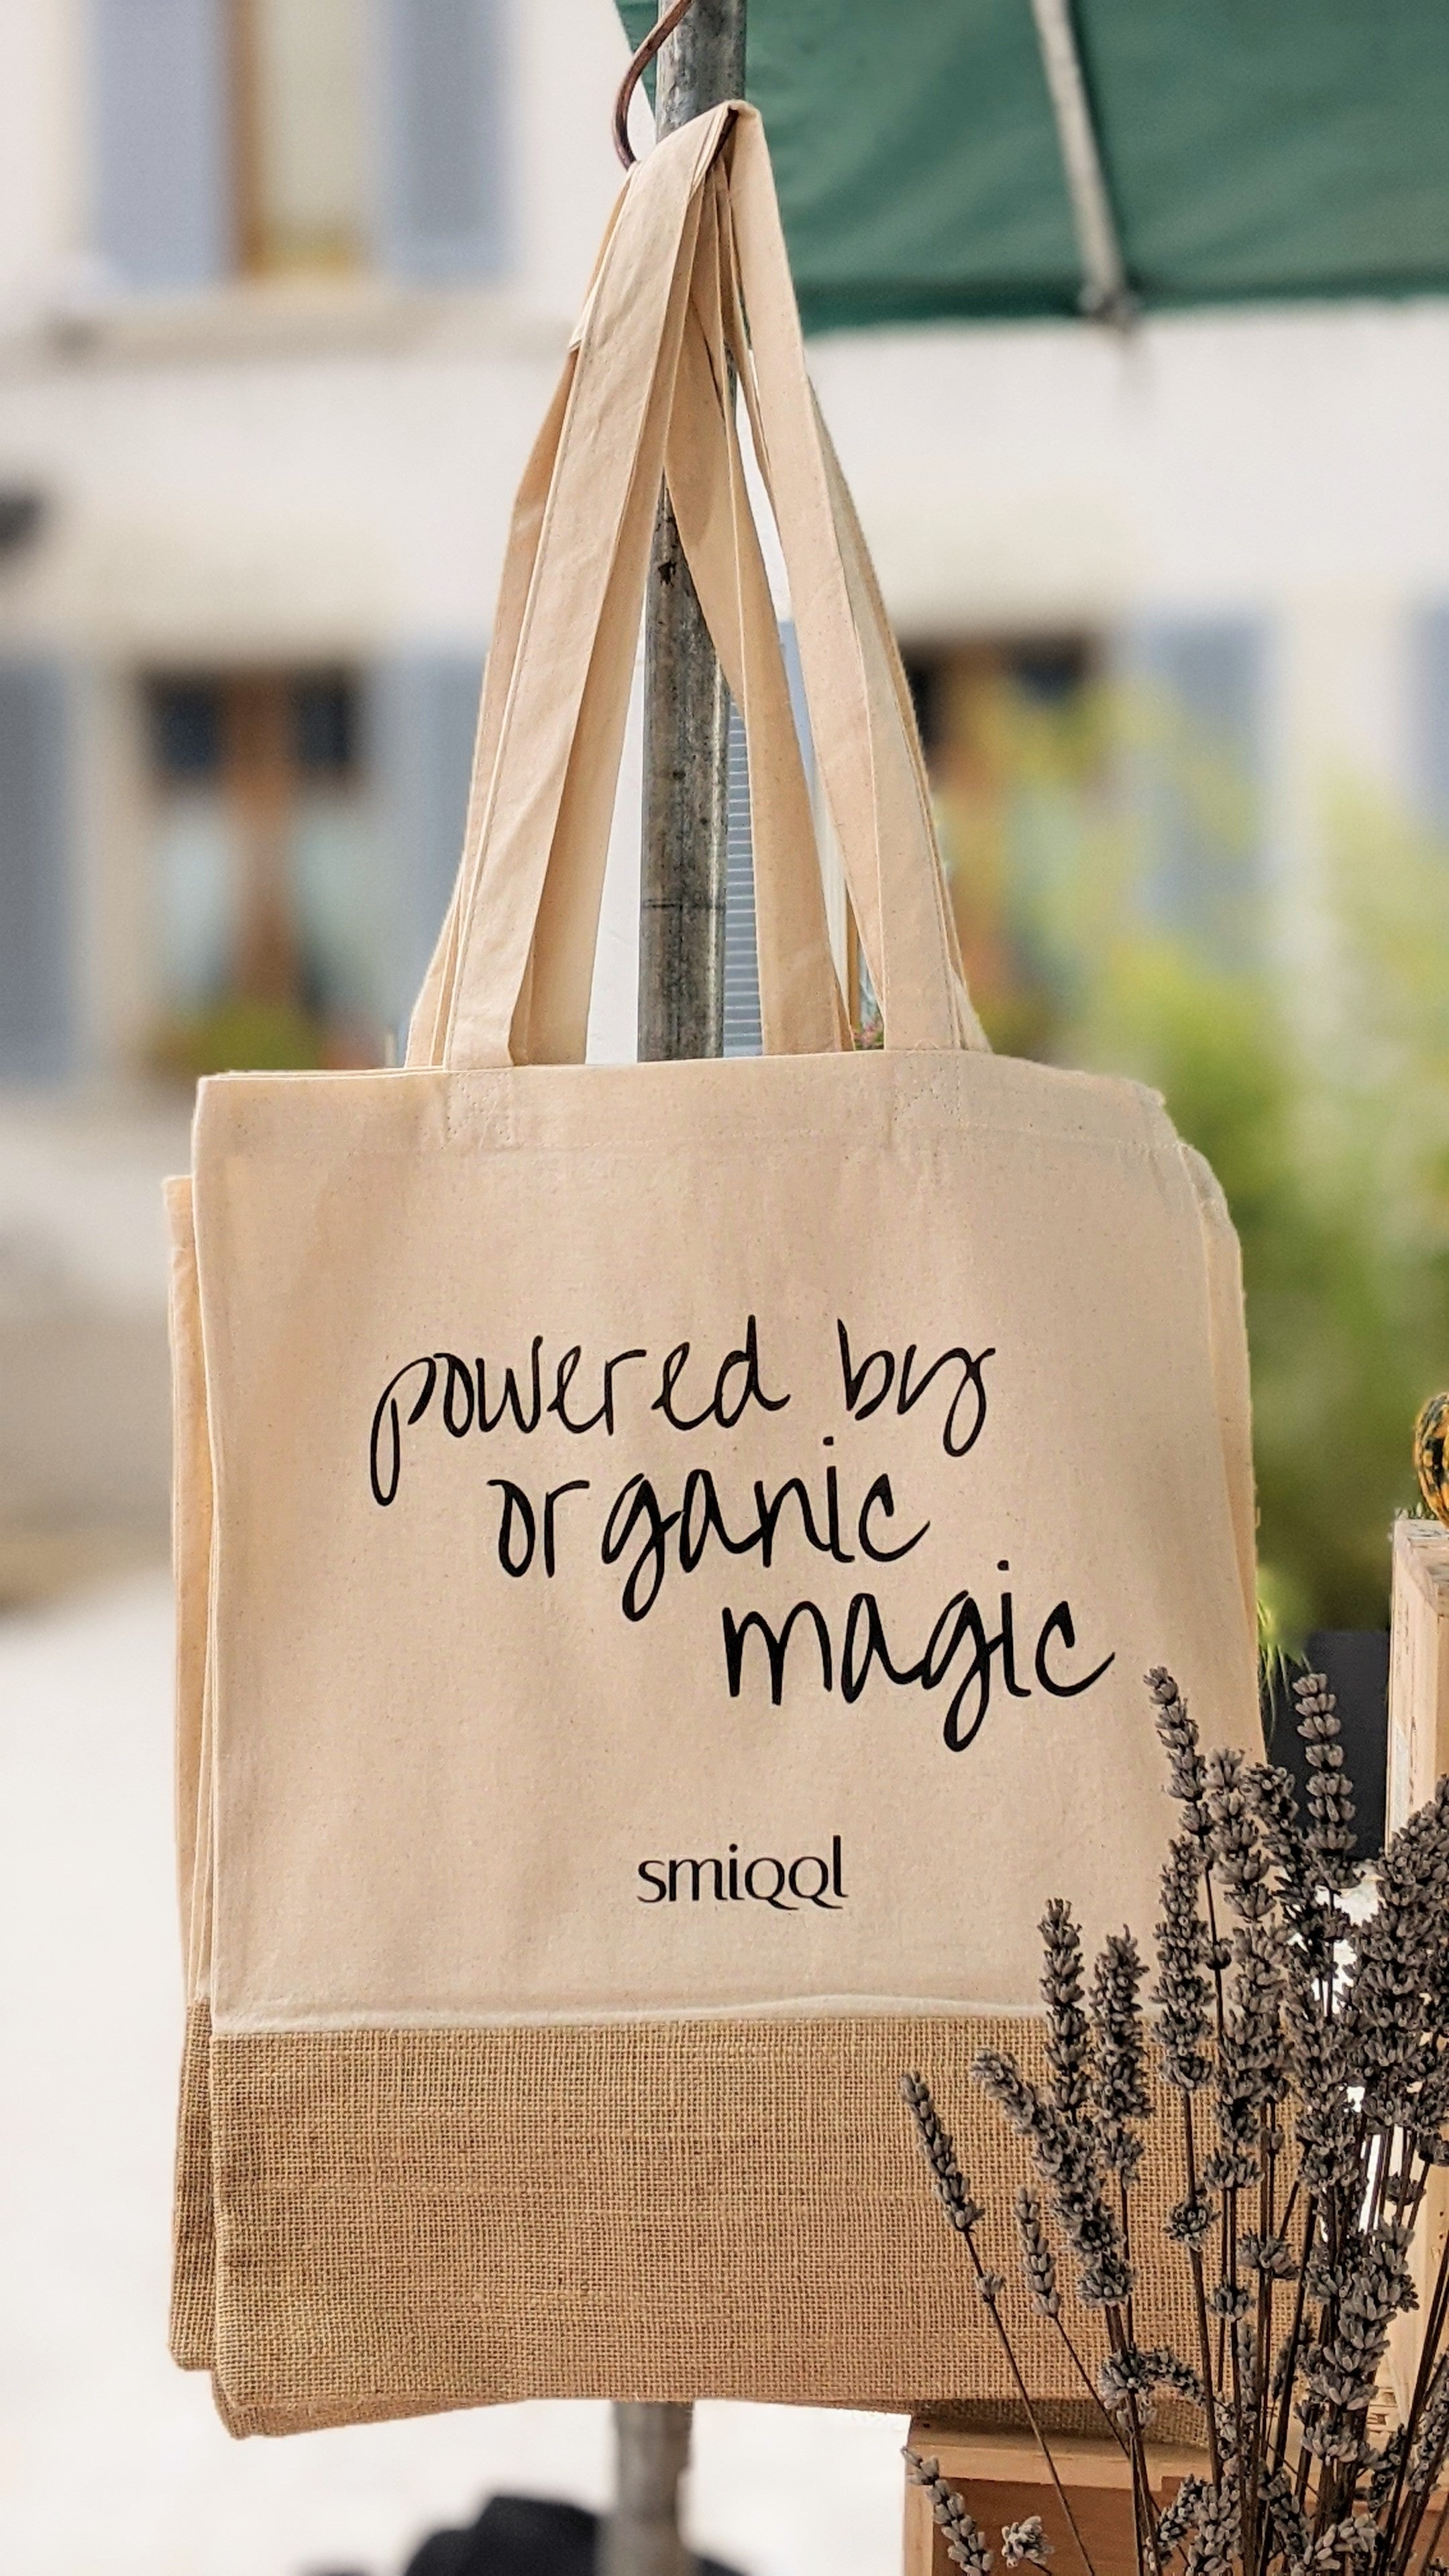 SMIQQL: The Organic Magic Gift Set